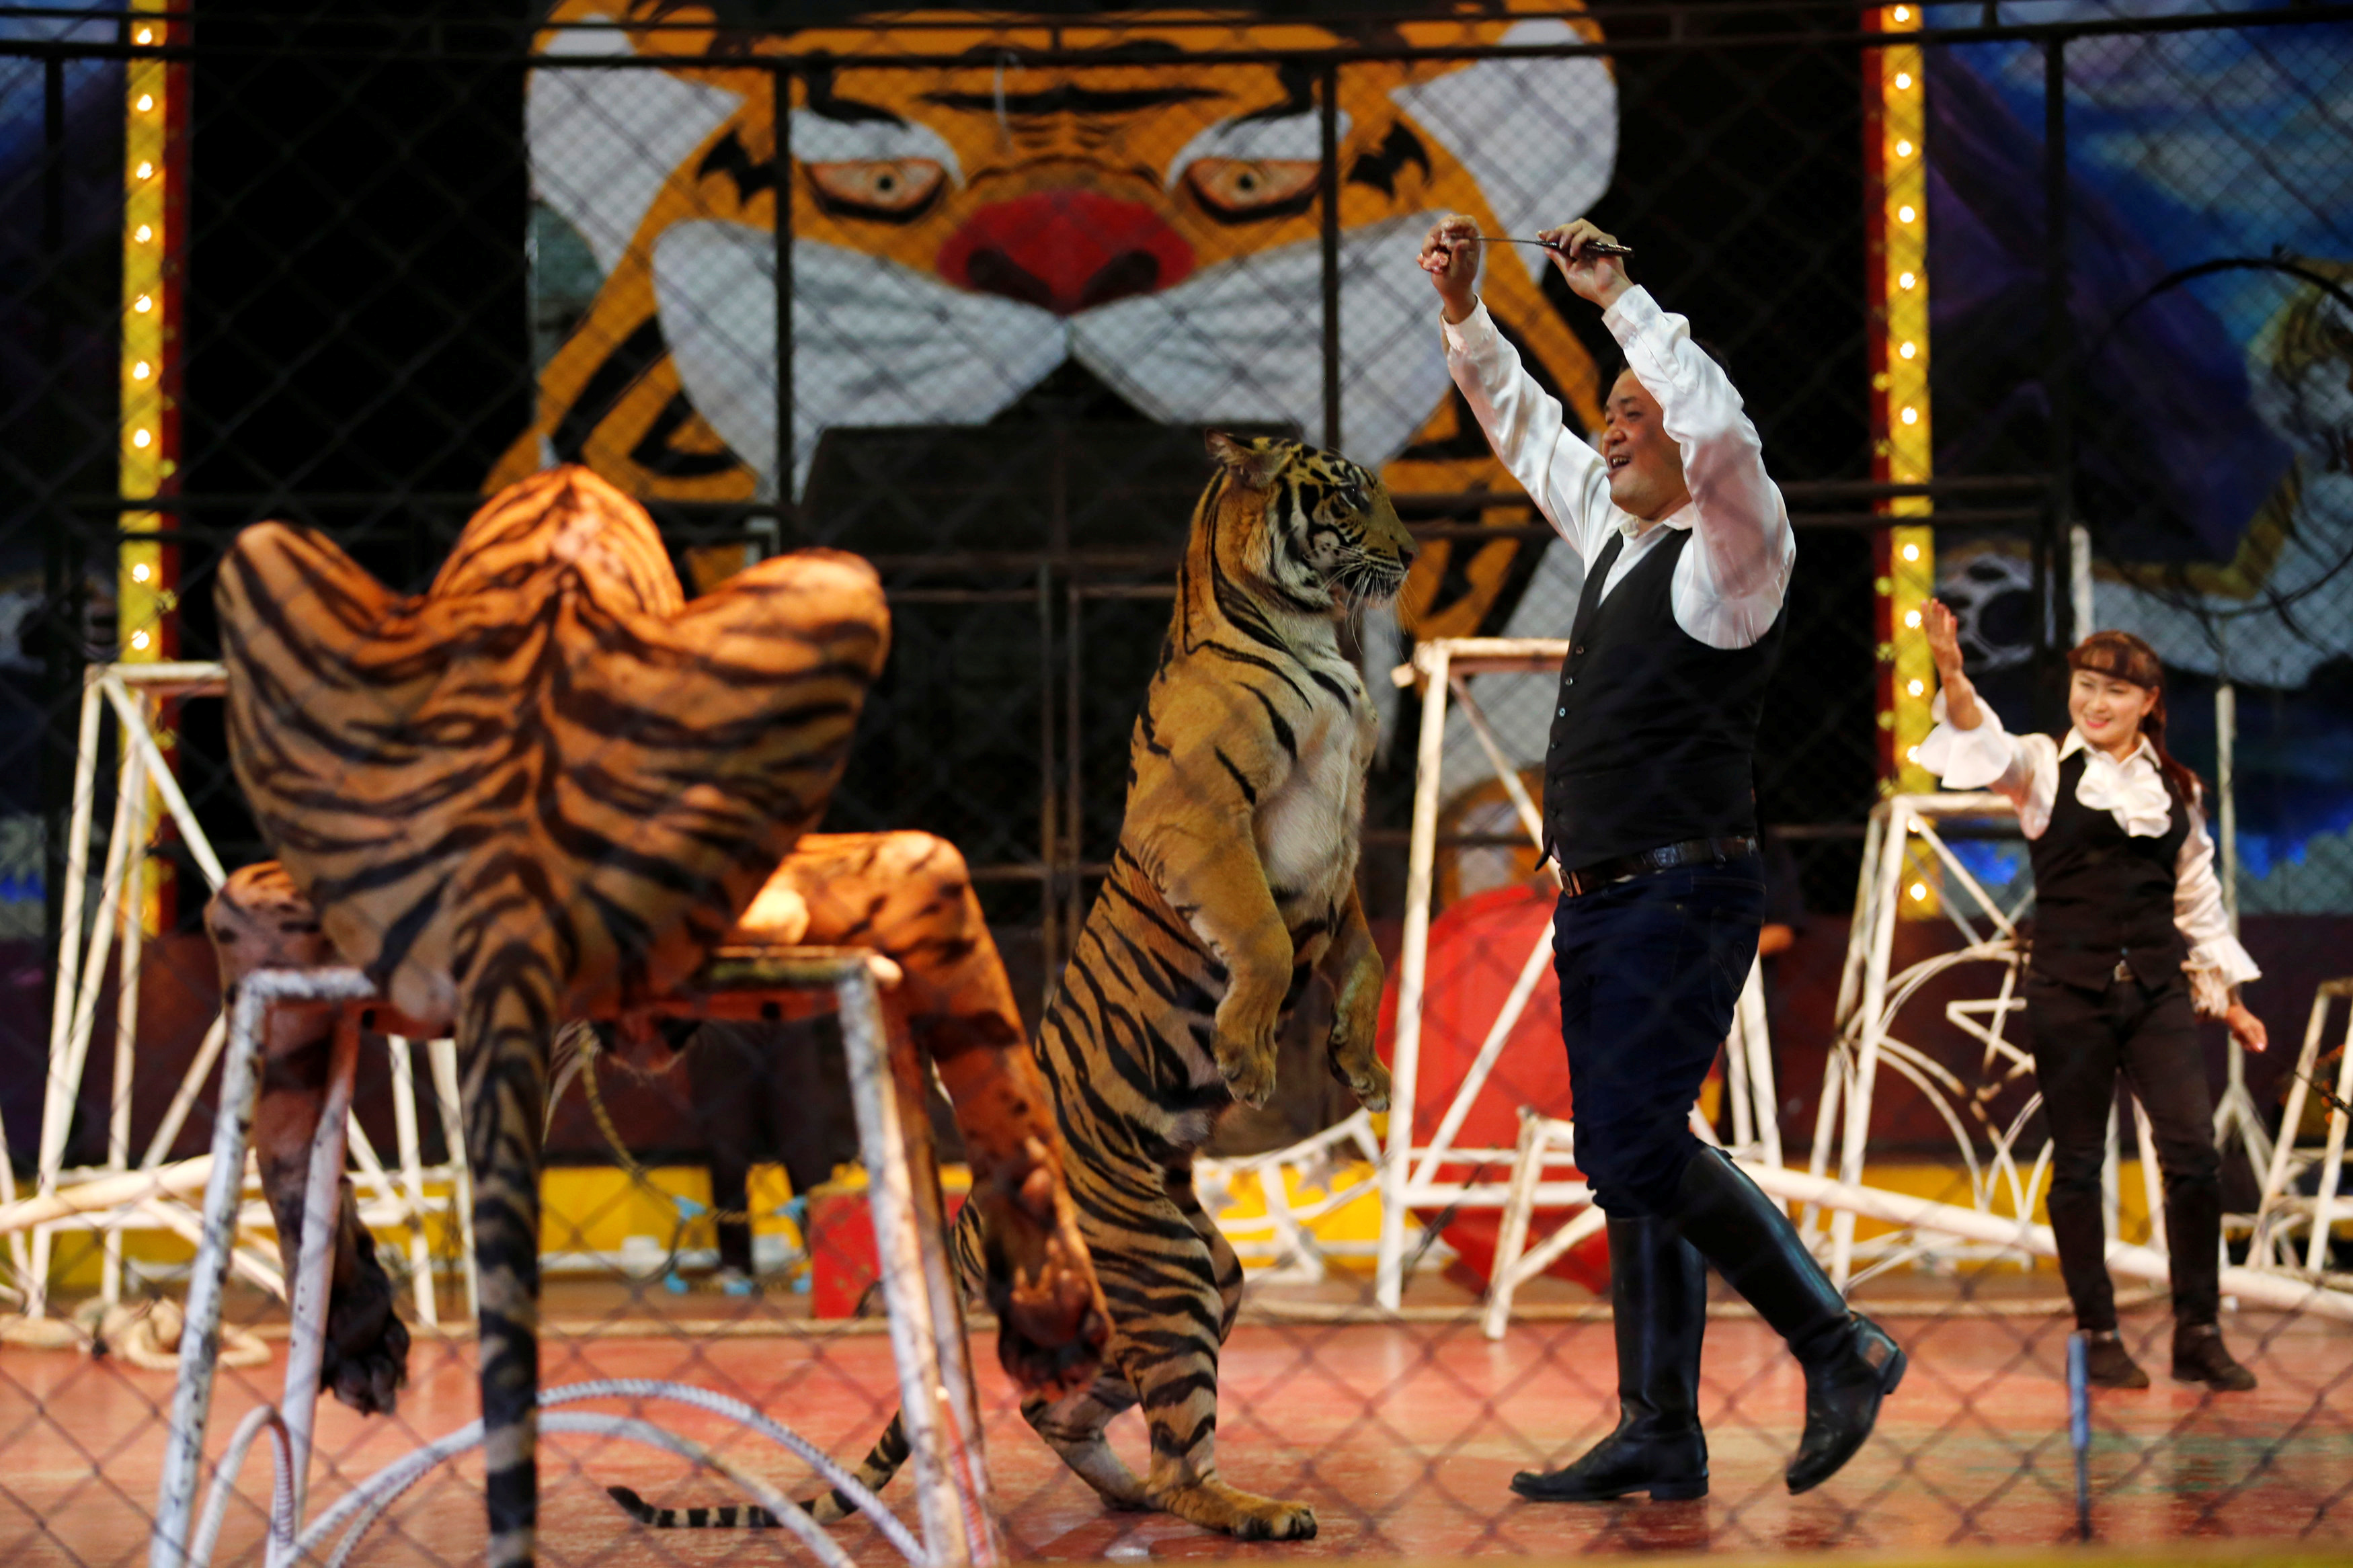 A trainer plays with a tiger during a performance for tourists at Sriracha Tiger Zoo, in Chonburi province, Thailand, on June 7, 2016